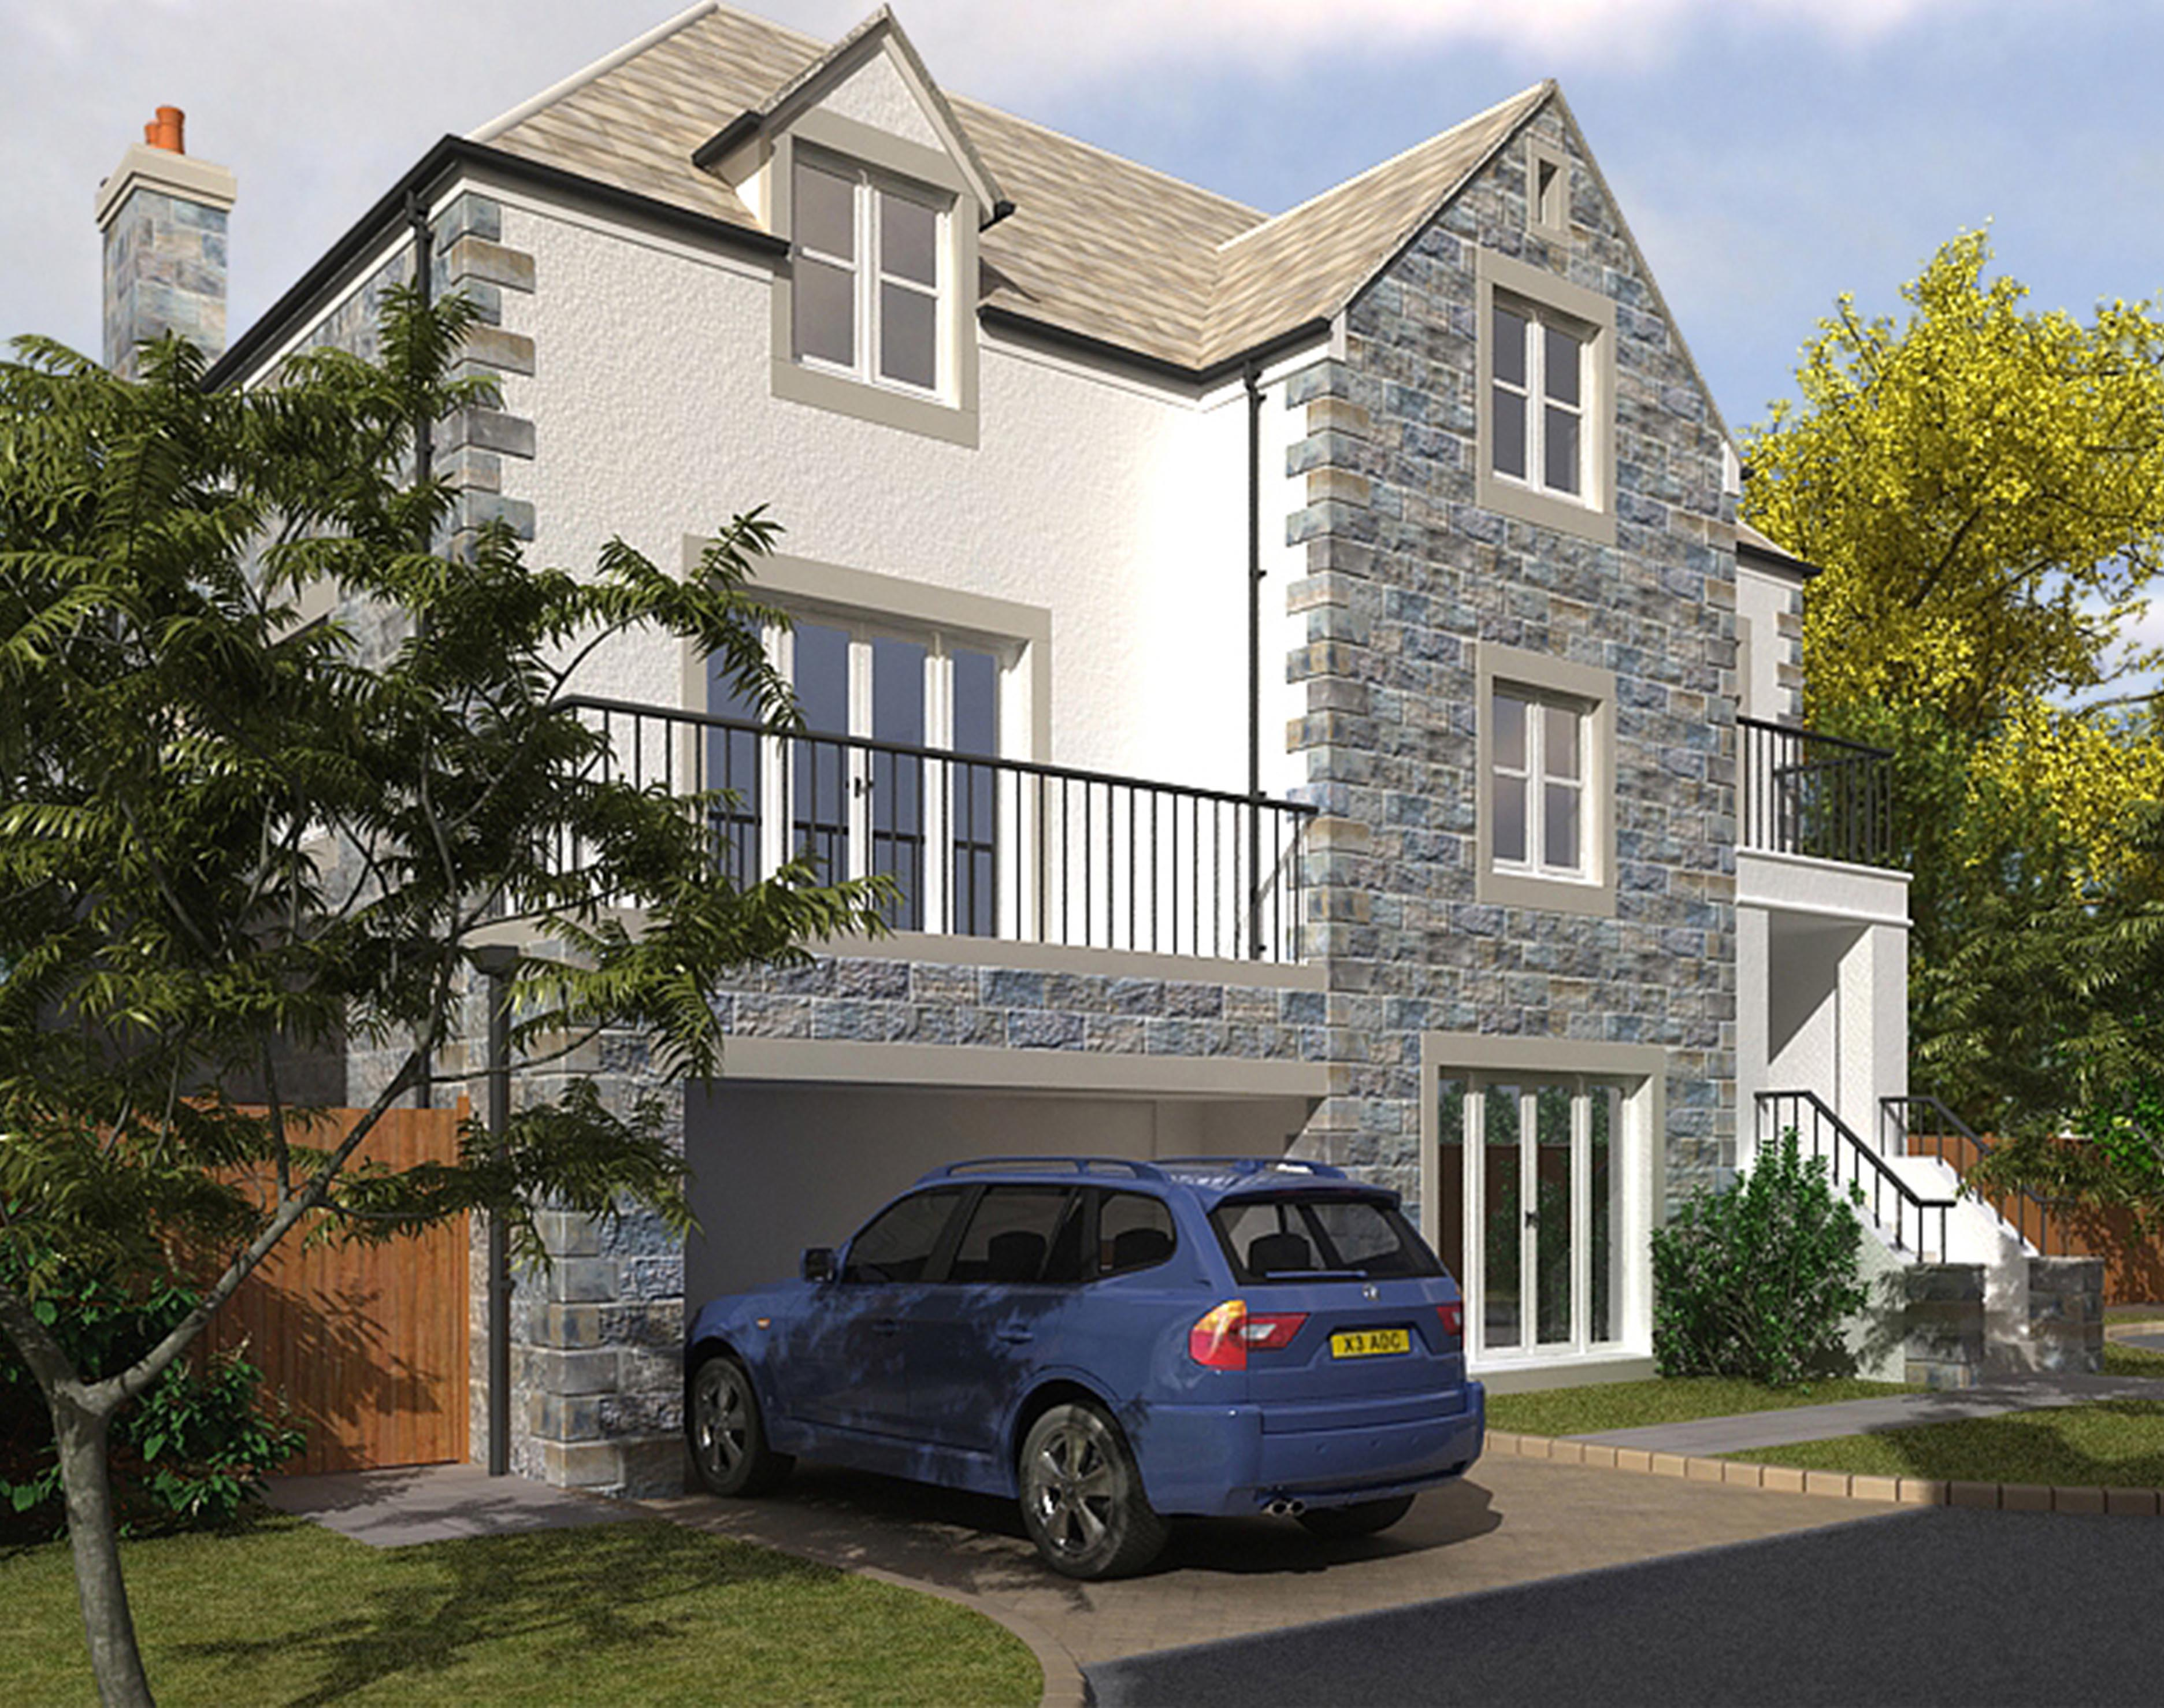 Erkulis | New Build | Arden Court Five superior five bedroom detached houses situated in one of the most sort after North Leeds locations